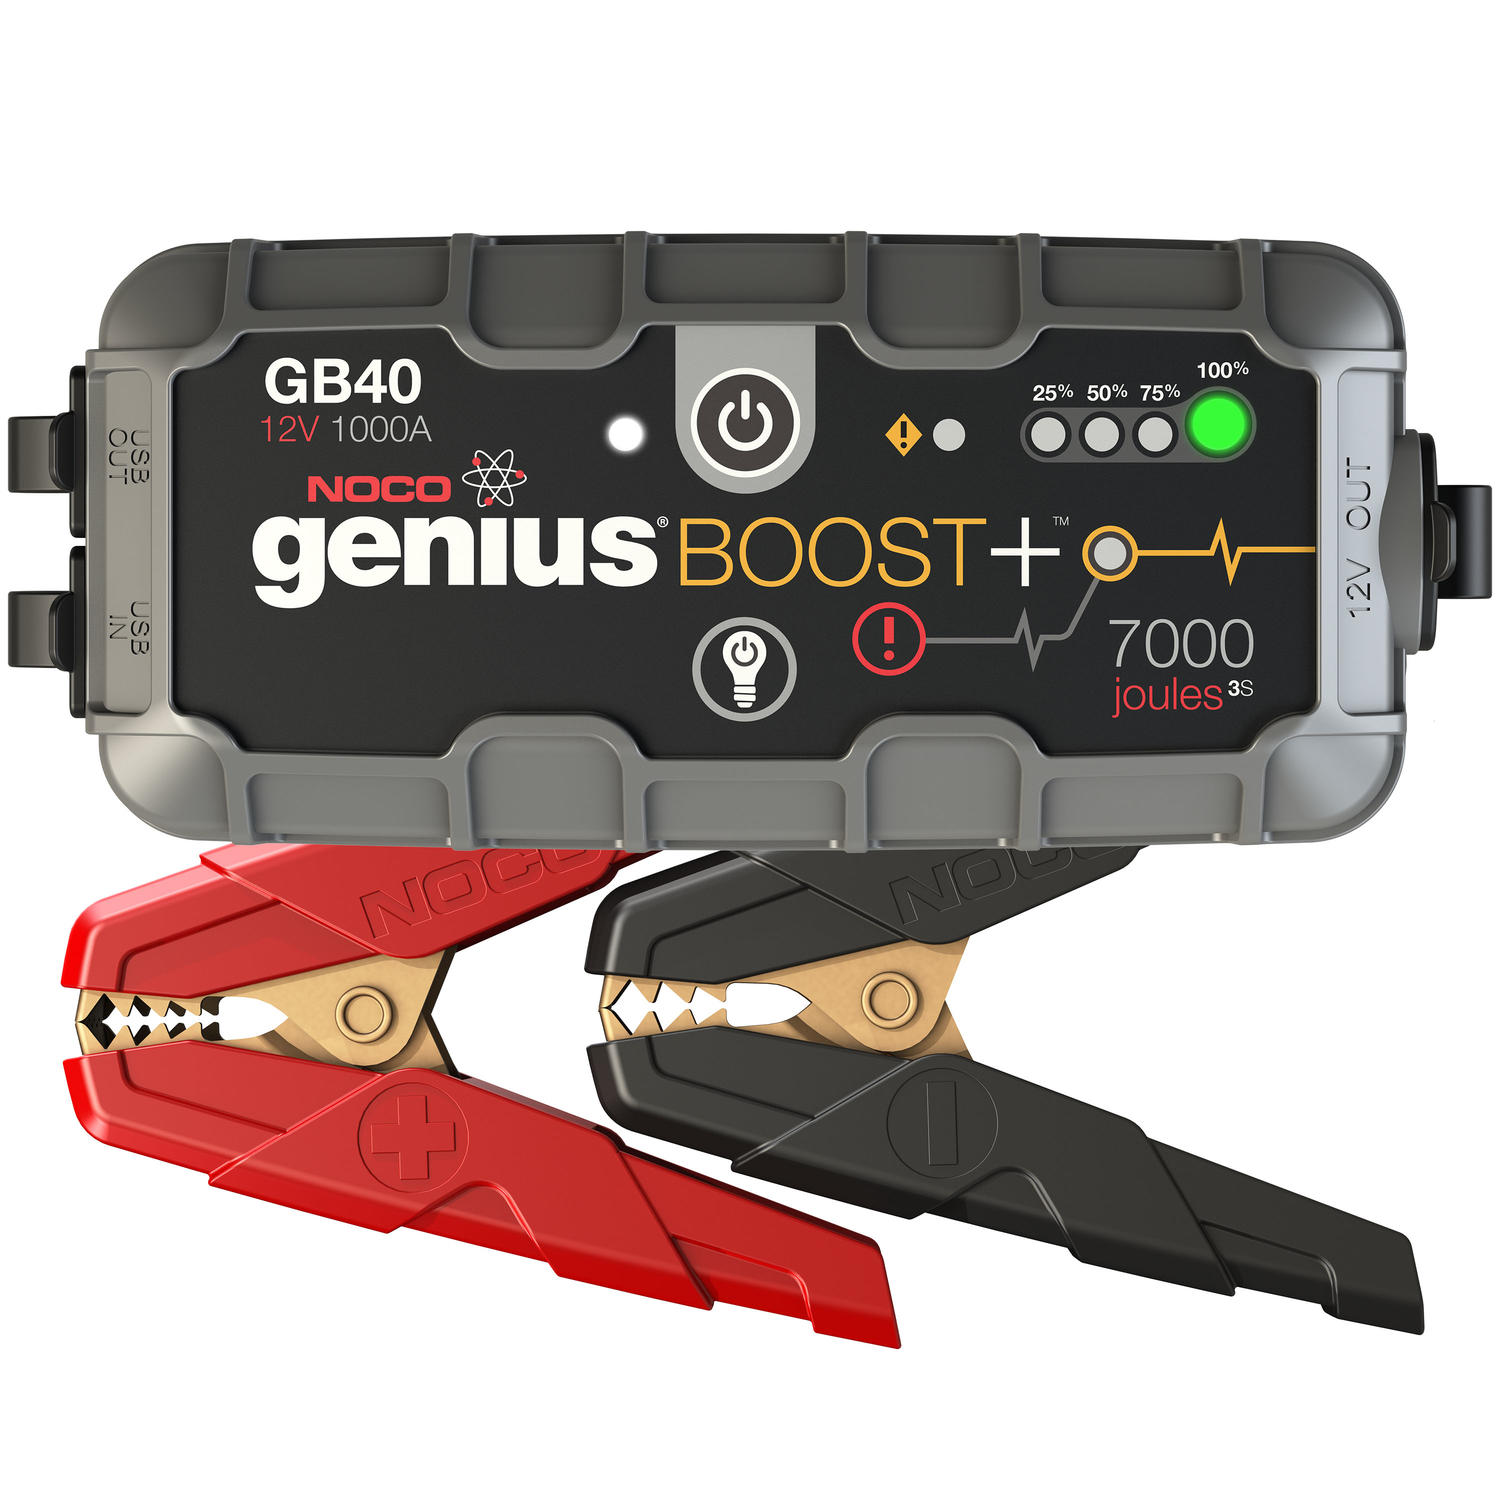 GB40 Genius Boost +  apukäynnistin